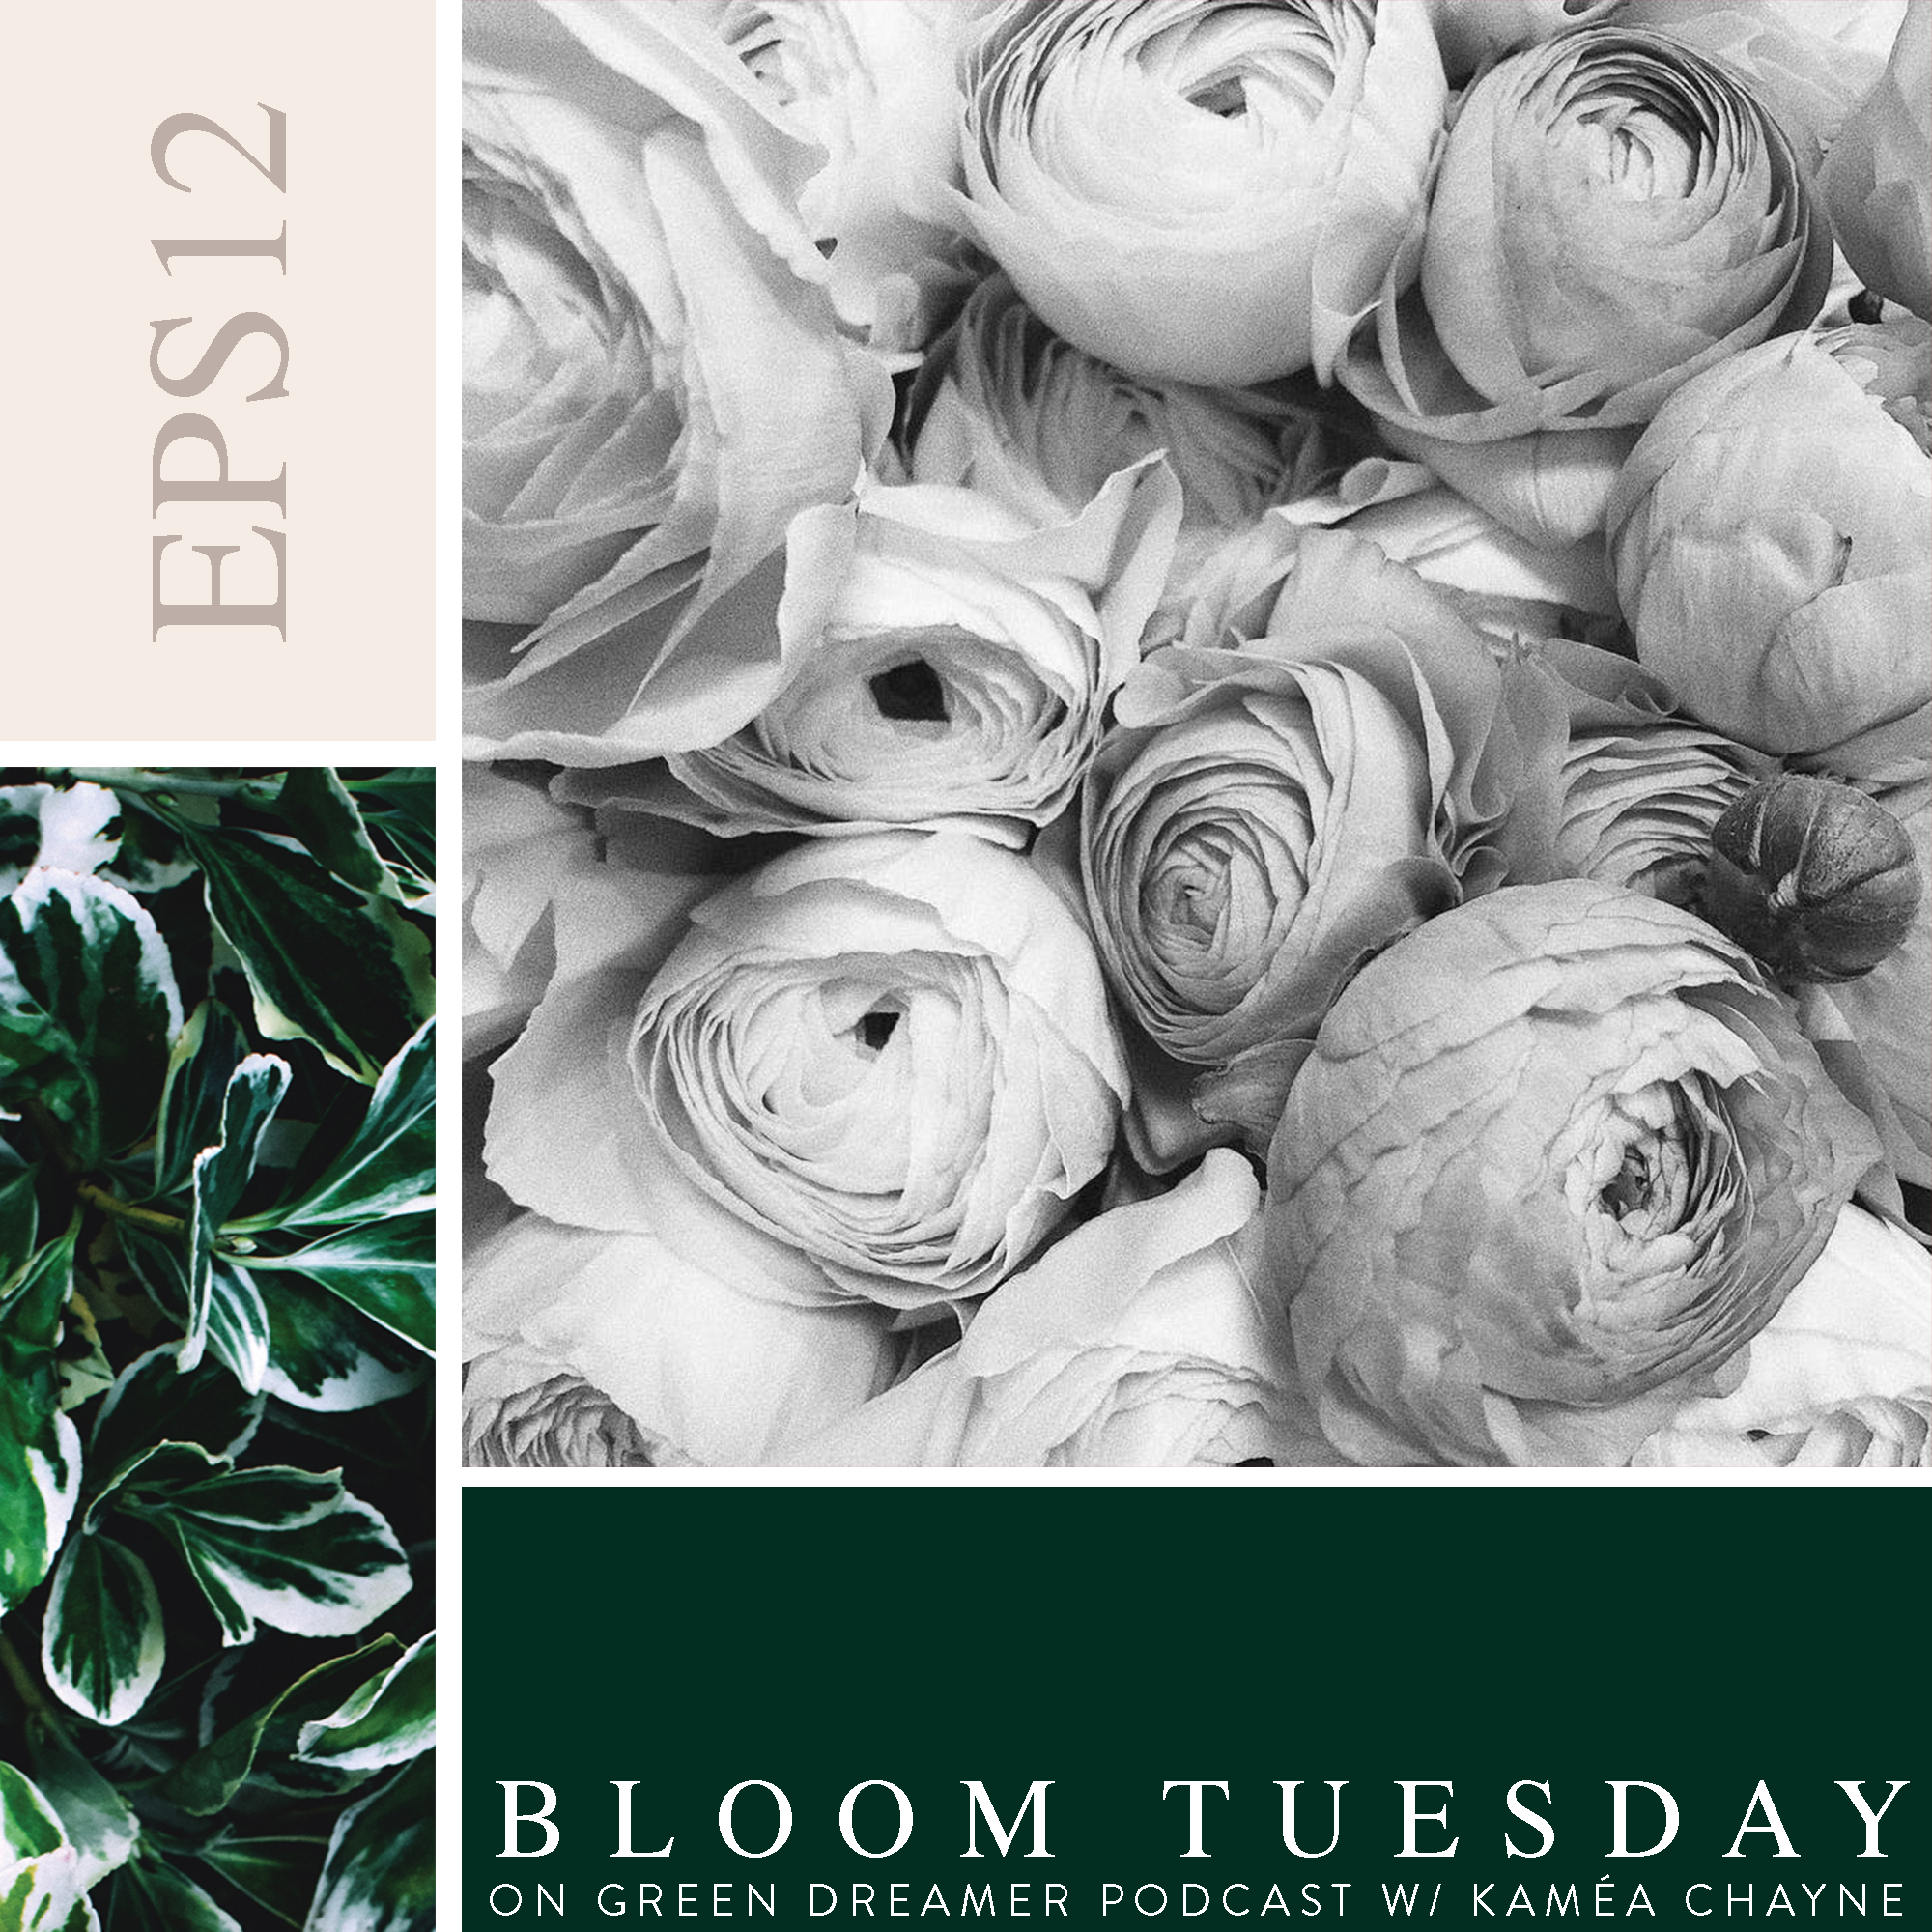 12) BLOOM TUESDAY